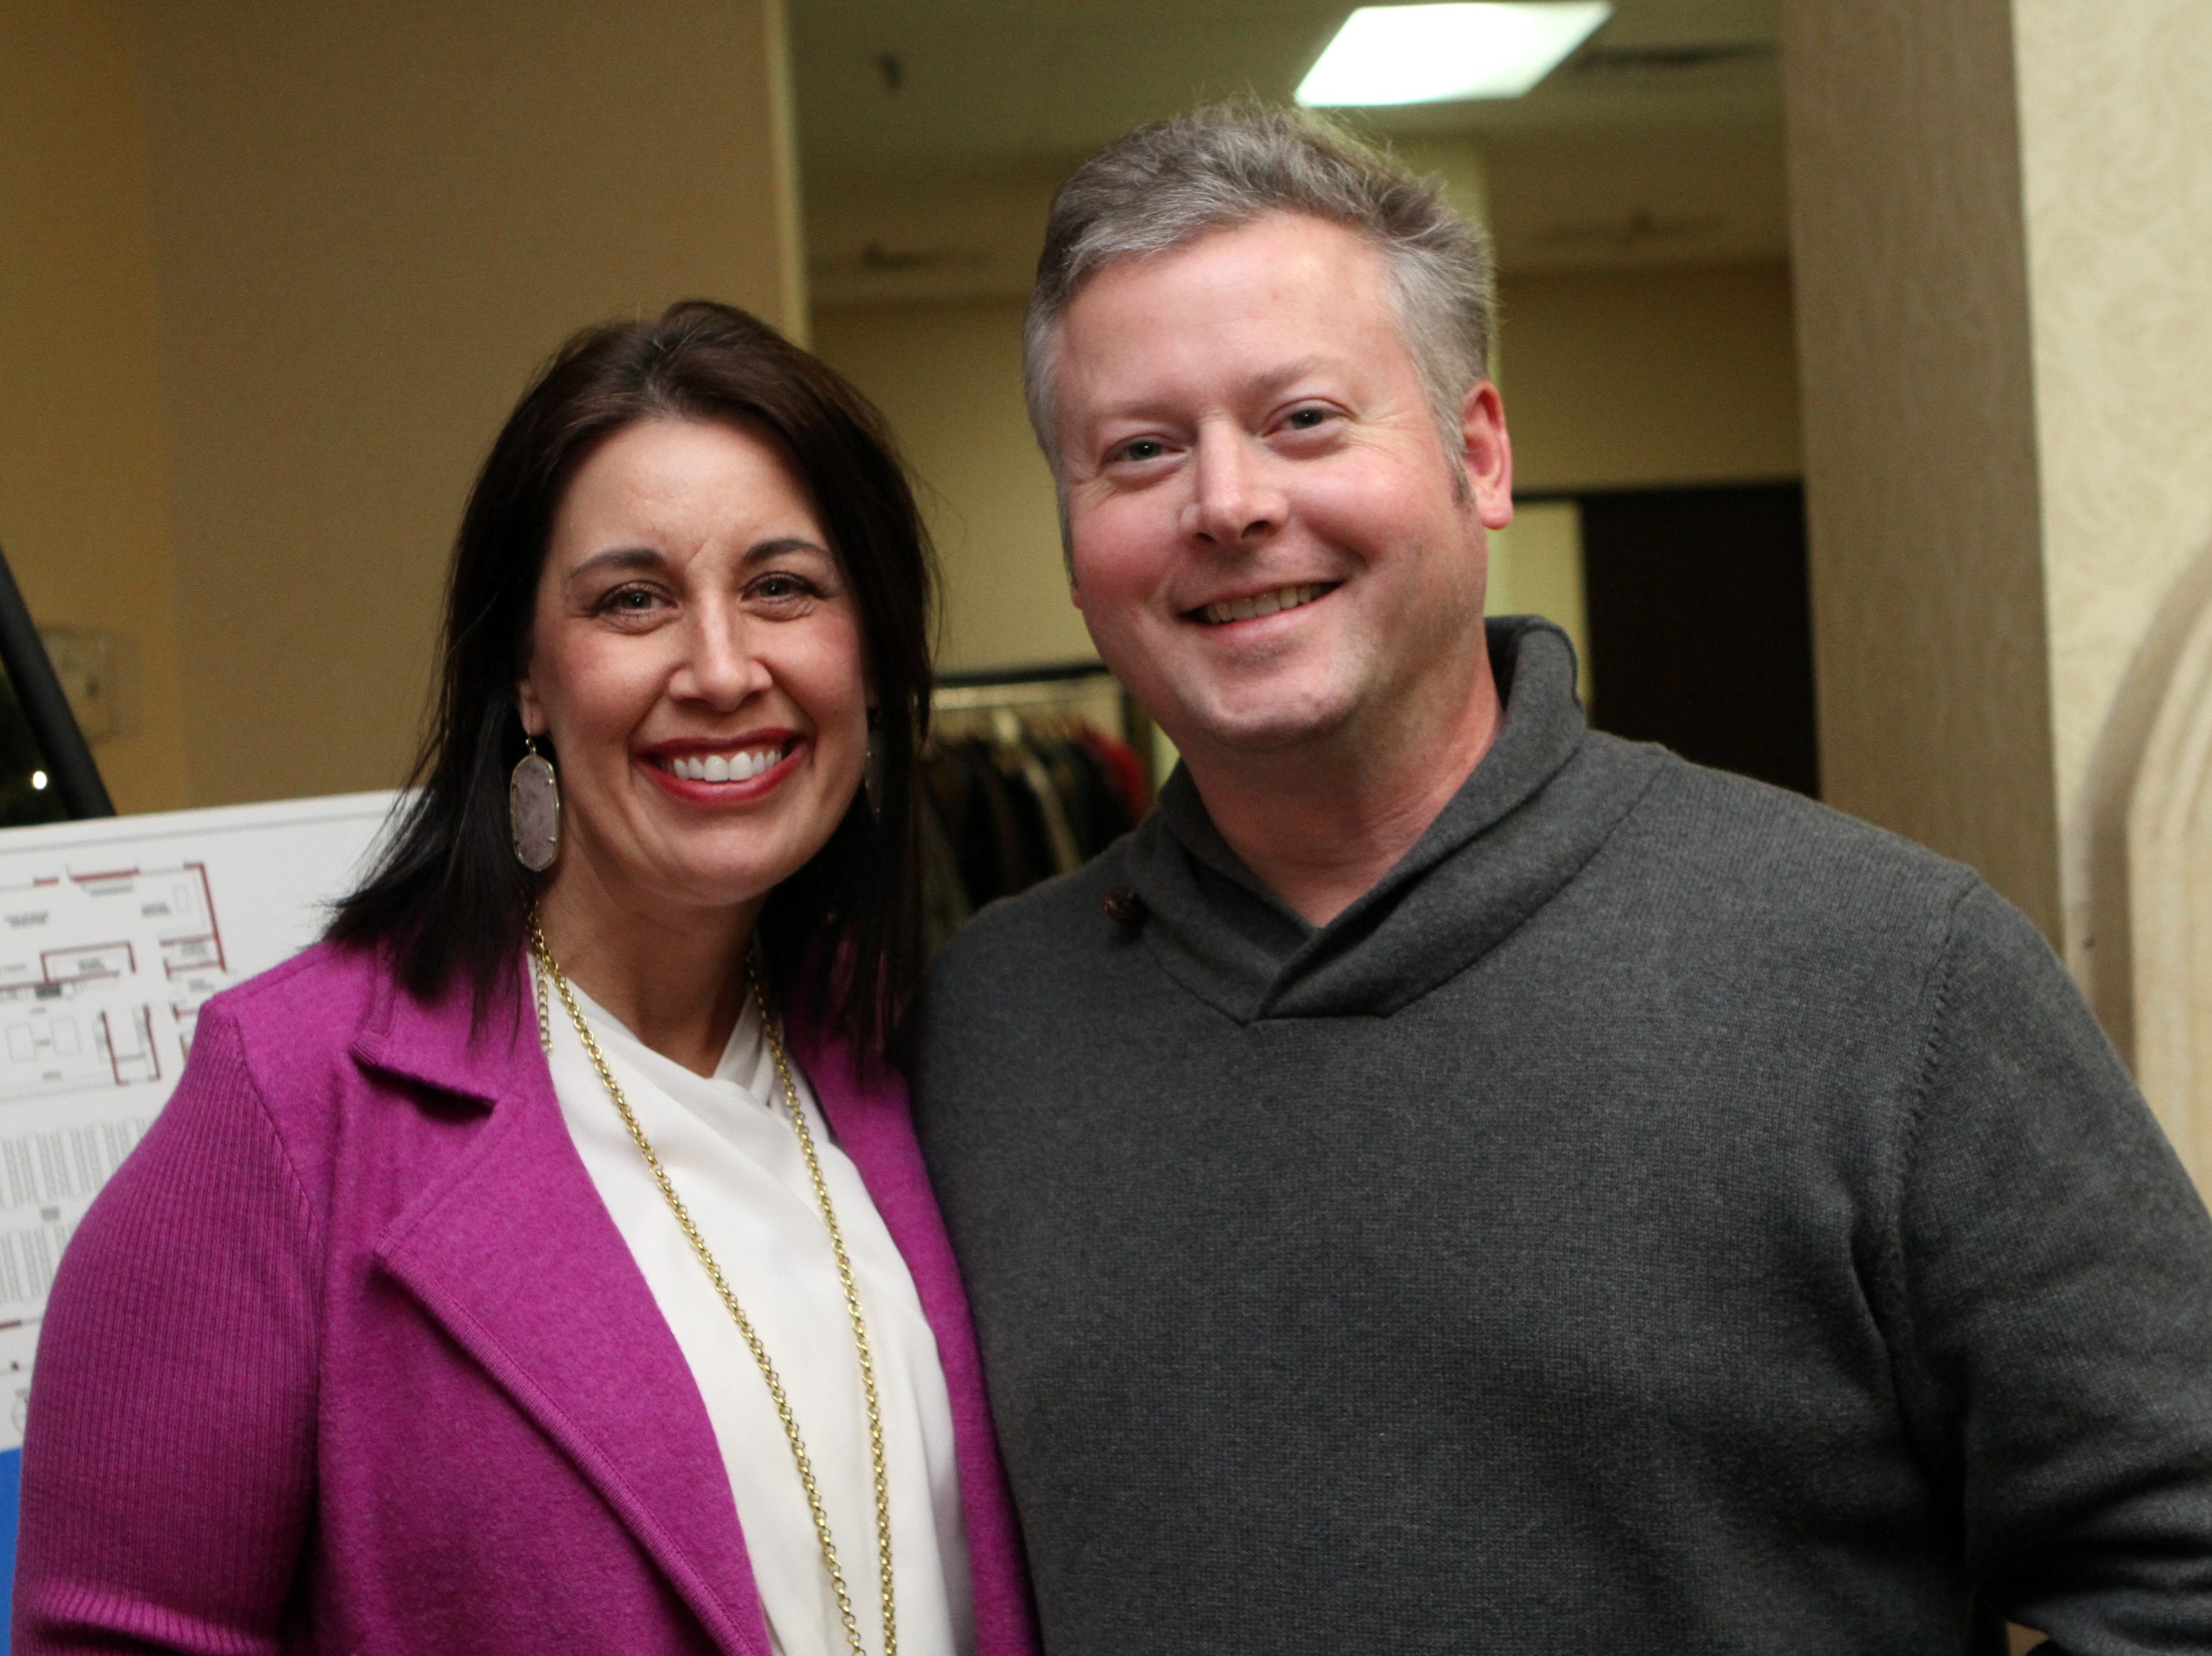 Christina and John Clark at the Loaves and Fishes Capital Campaign Kickoff on Saturday, Nov. 10, 2018.